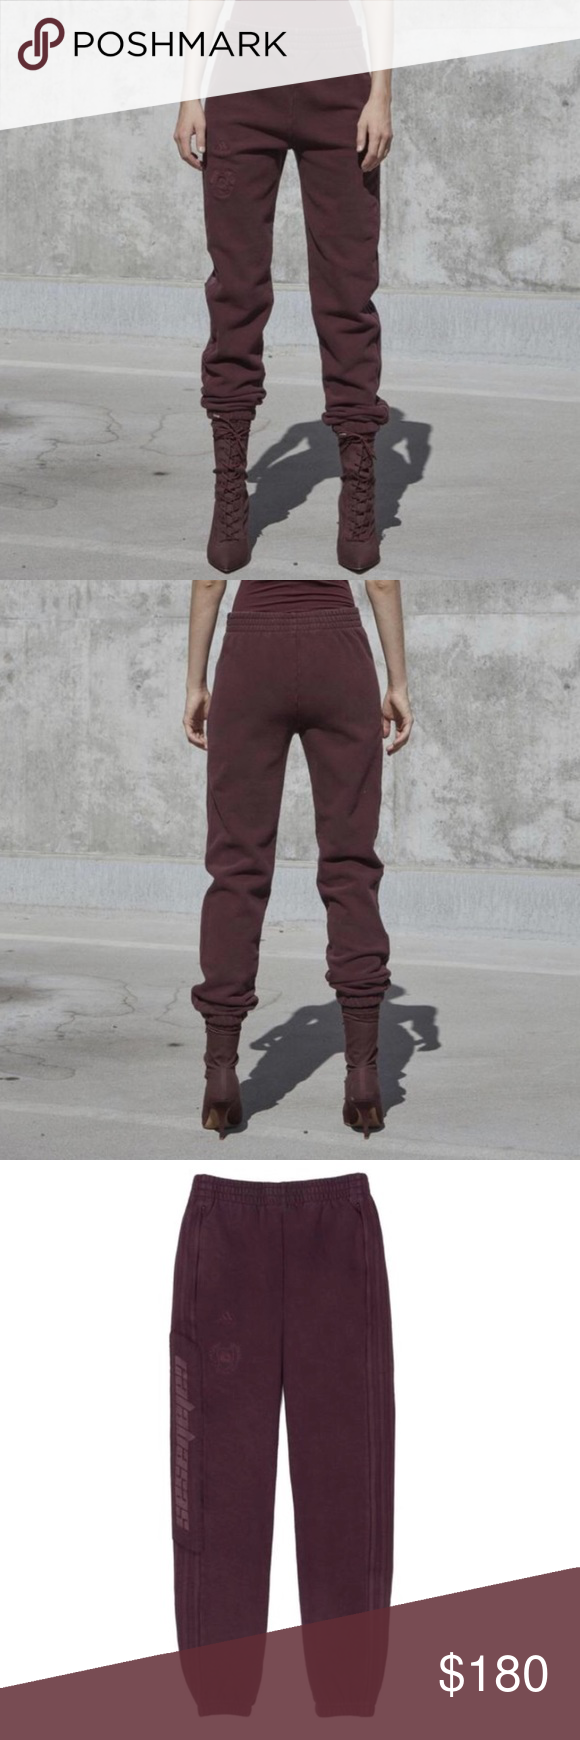 7b33e8940 100% Authentic YEEZY pants 100% authentic new YEEZY pants. These sweatpants  are a